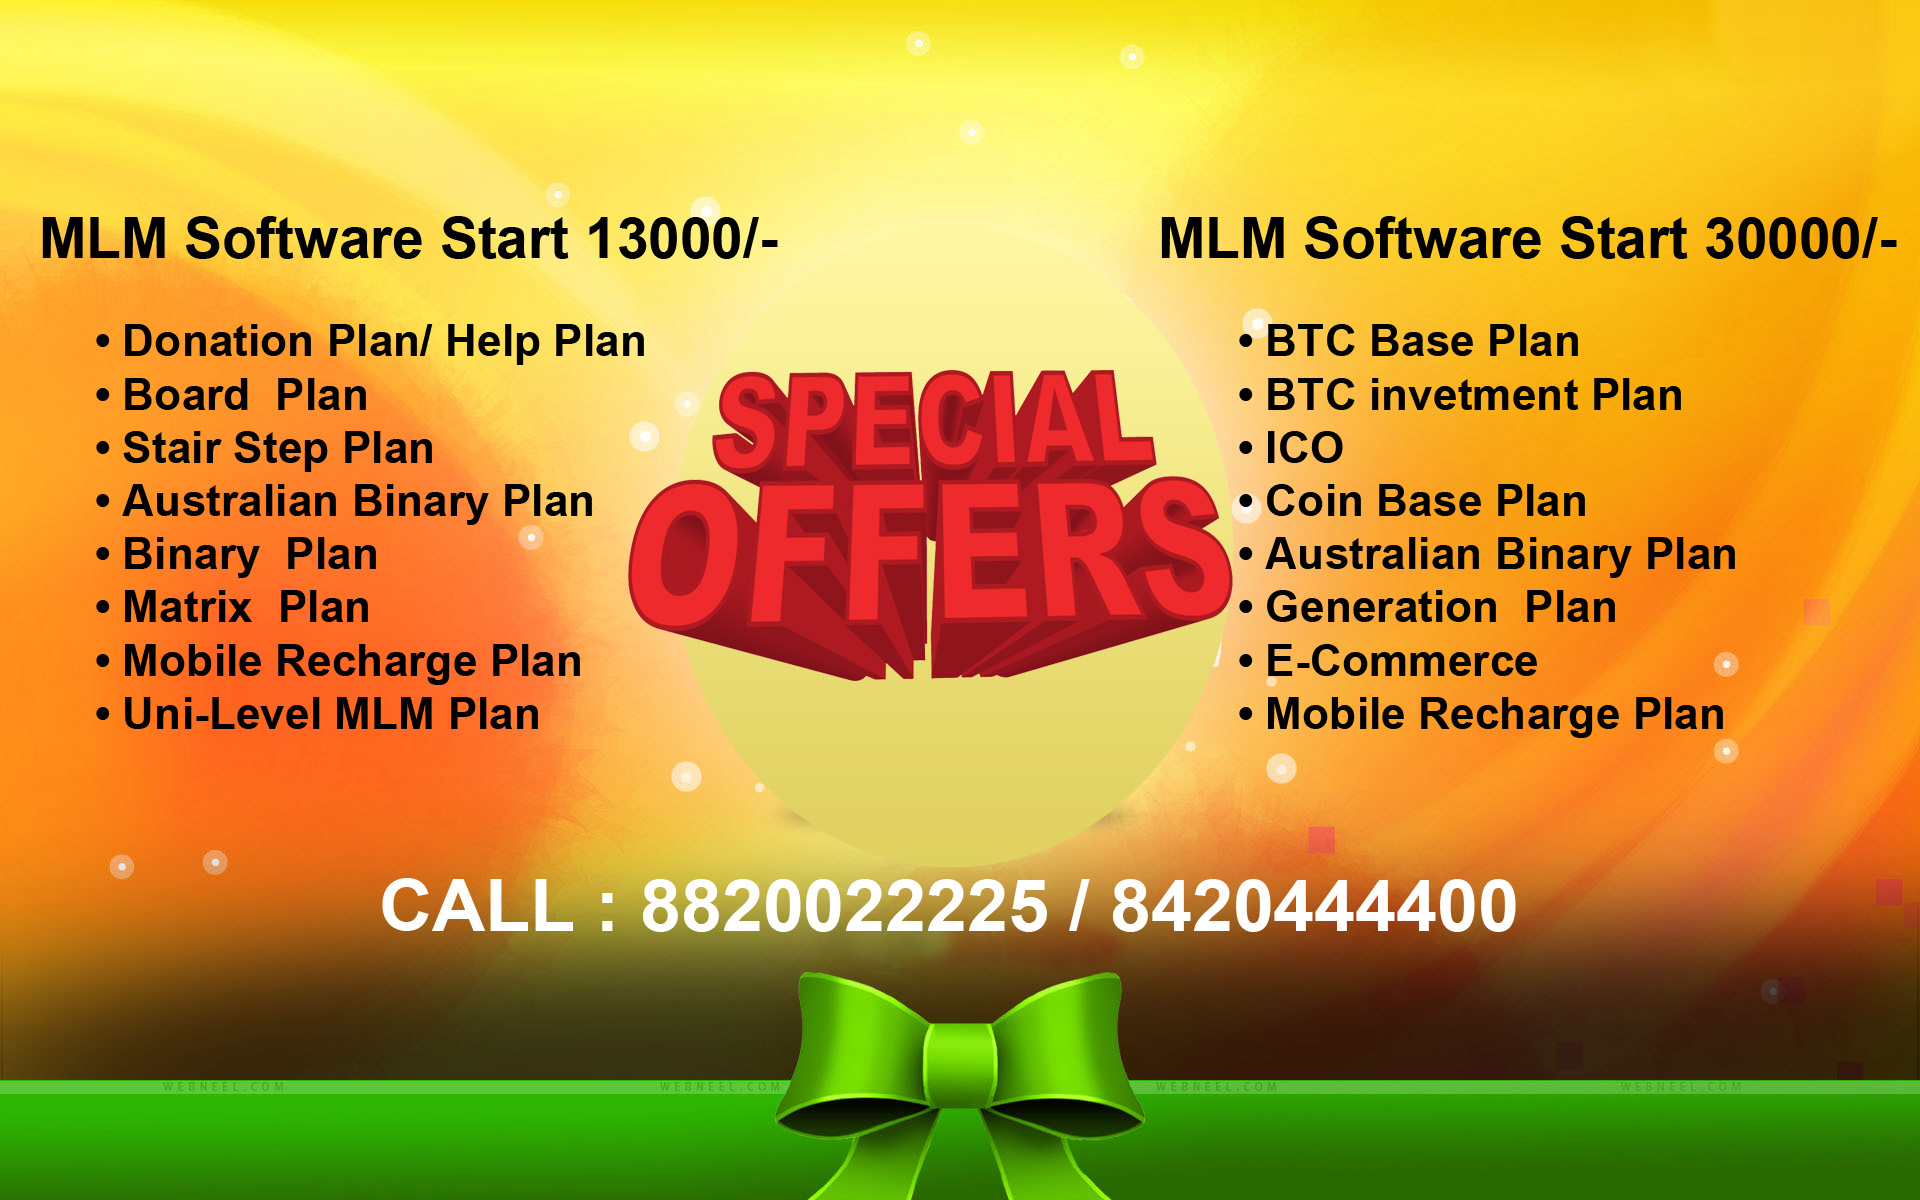 All Types of Website, Coin wallet plan Website & MLM Software Start with Rs.13000 to 50,000/- Only.